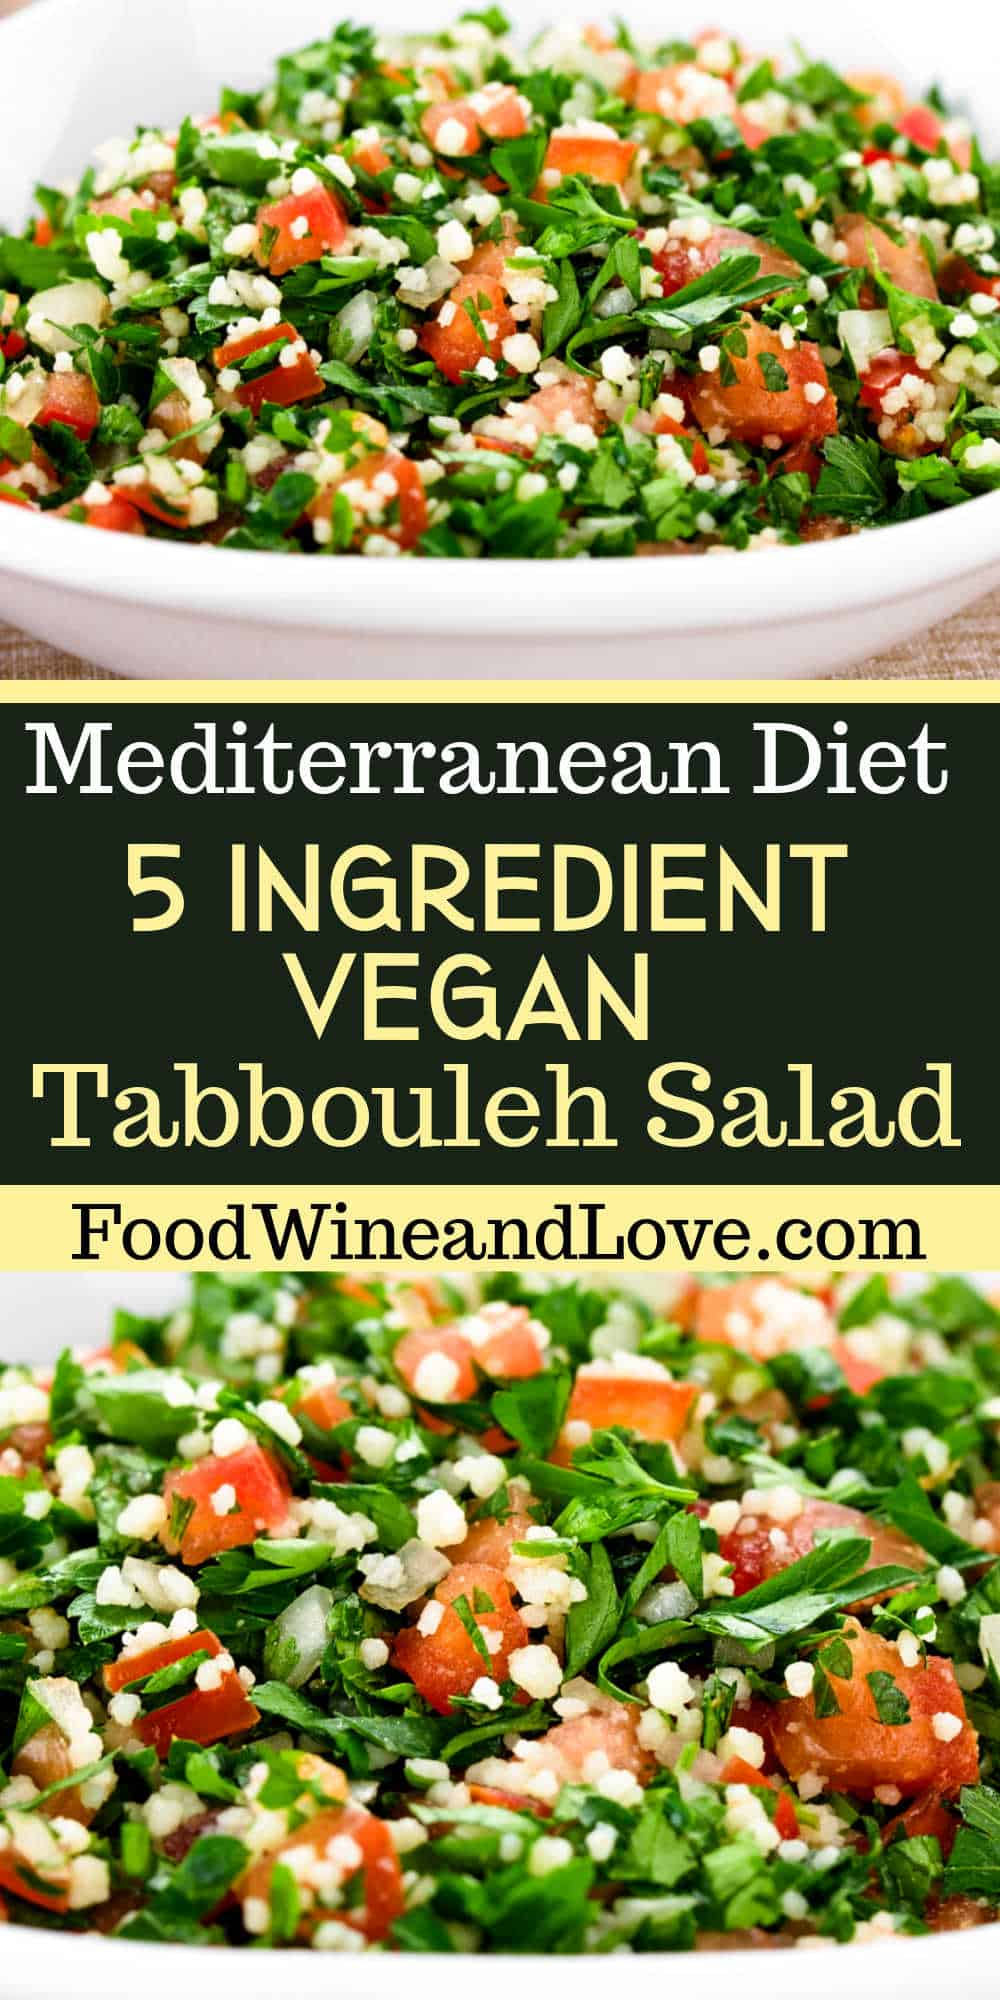 5 Ingredient Vegan Tabbouleh Salad